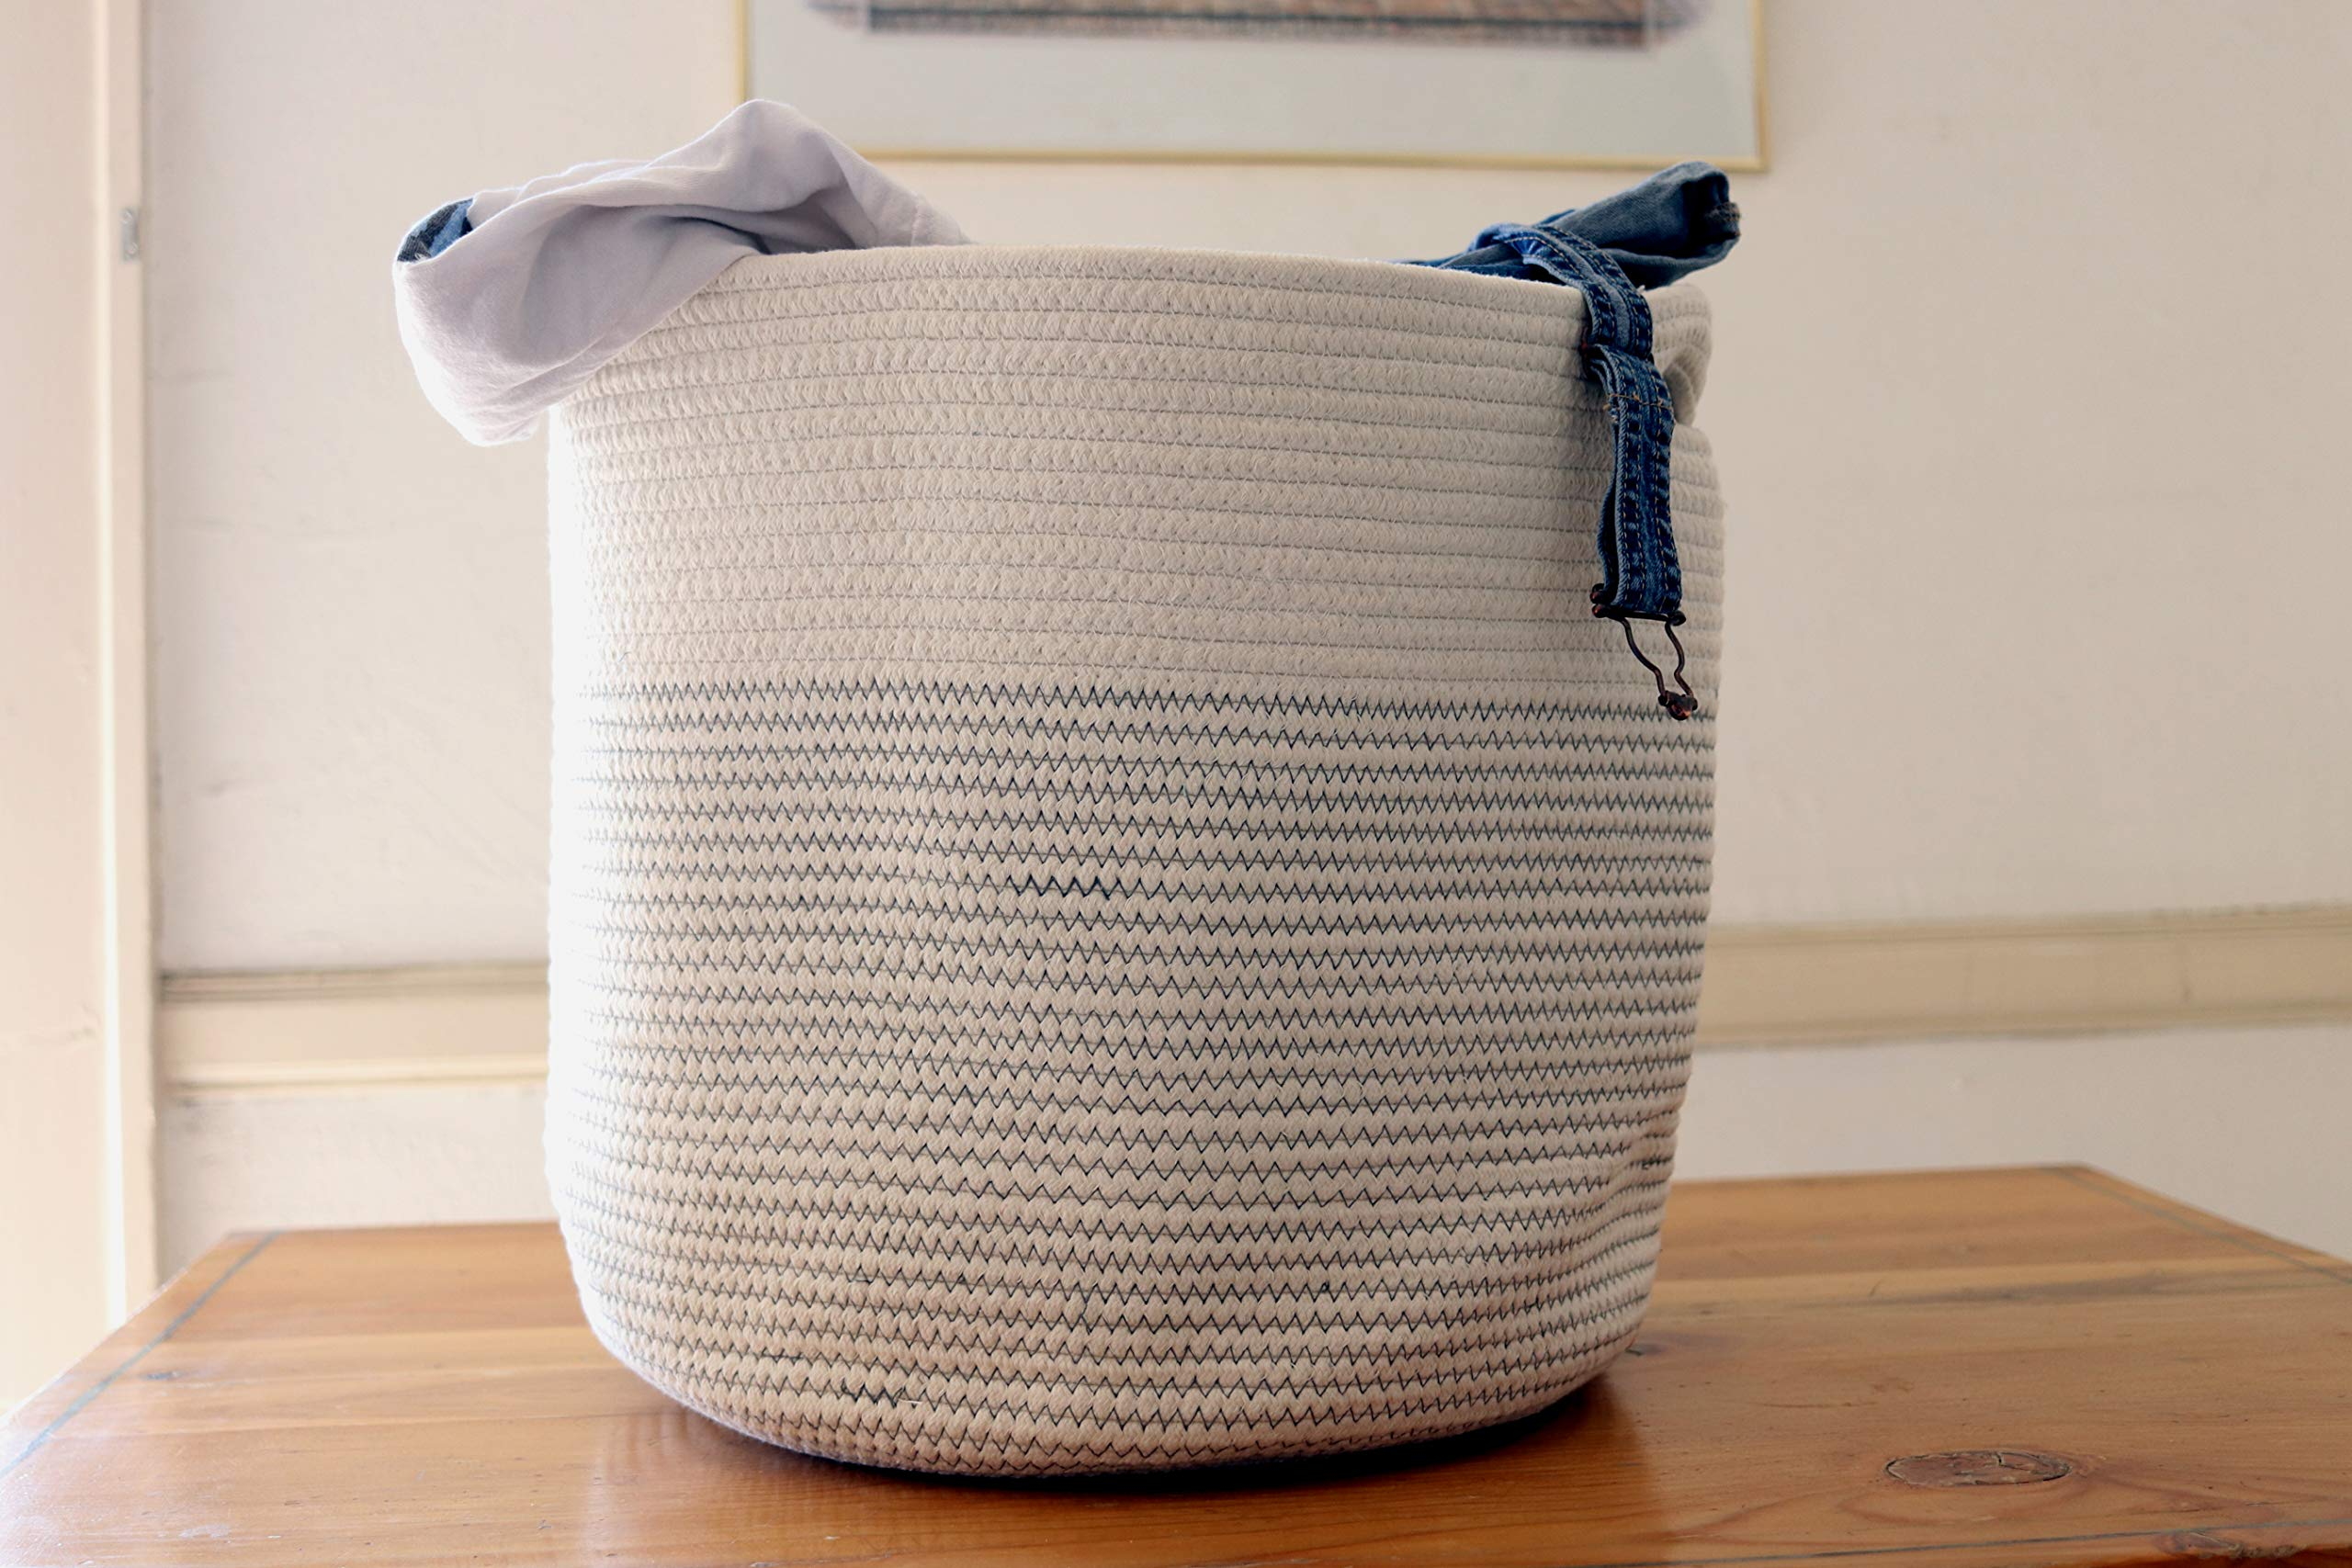 Esterias Large 100% Natural Woven Cotton Rope Basket with Handles 17 x 14.7 | for Laundry, Nursery, Storage